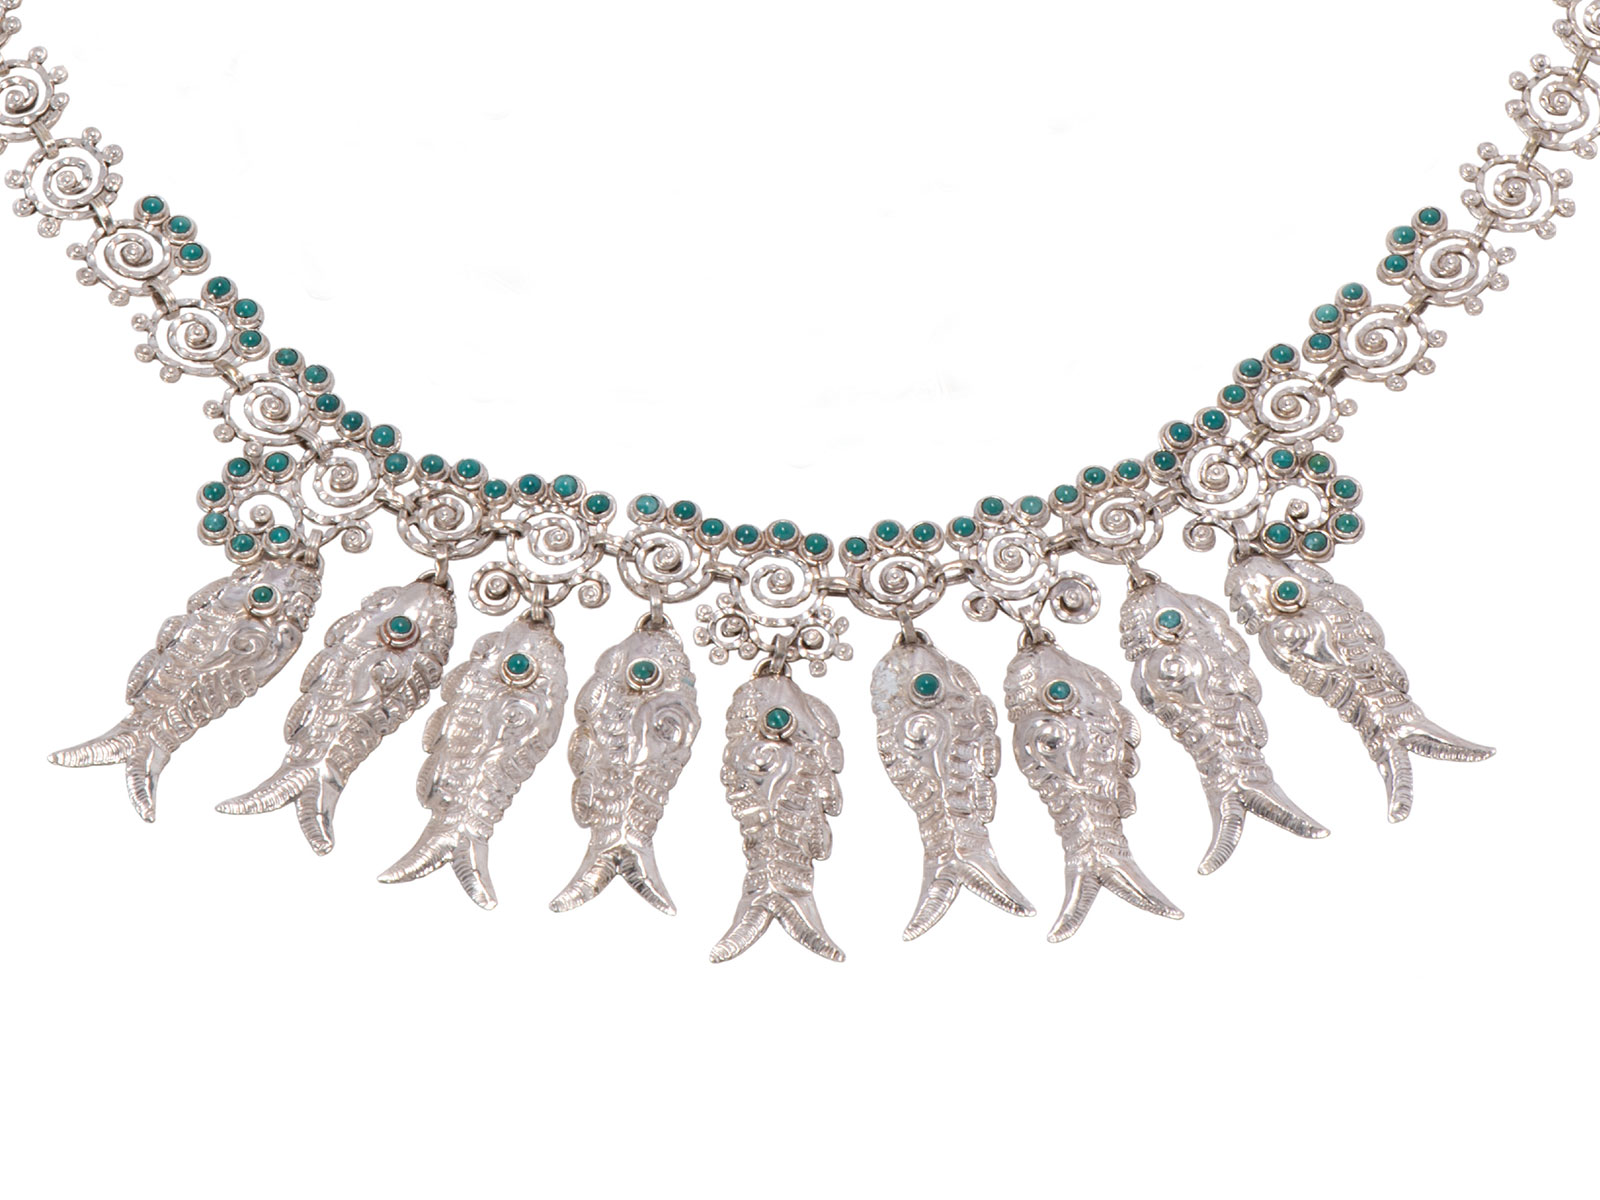 MATL-Fish-Necklace